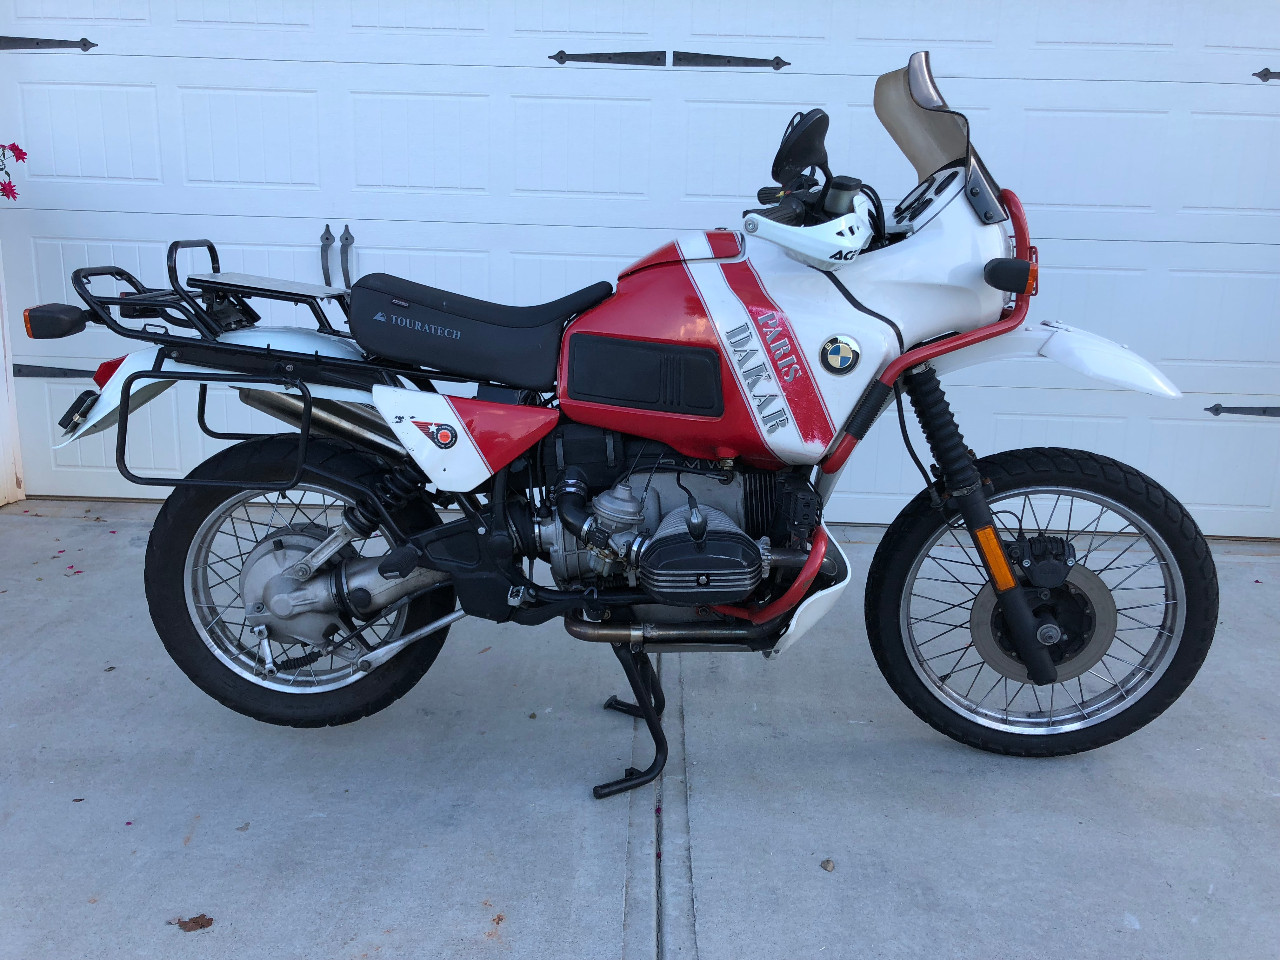 23 BMW 2002322 Motorcycles For Sale